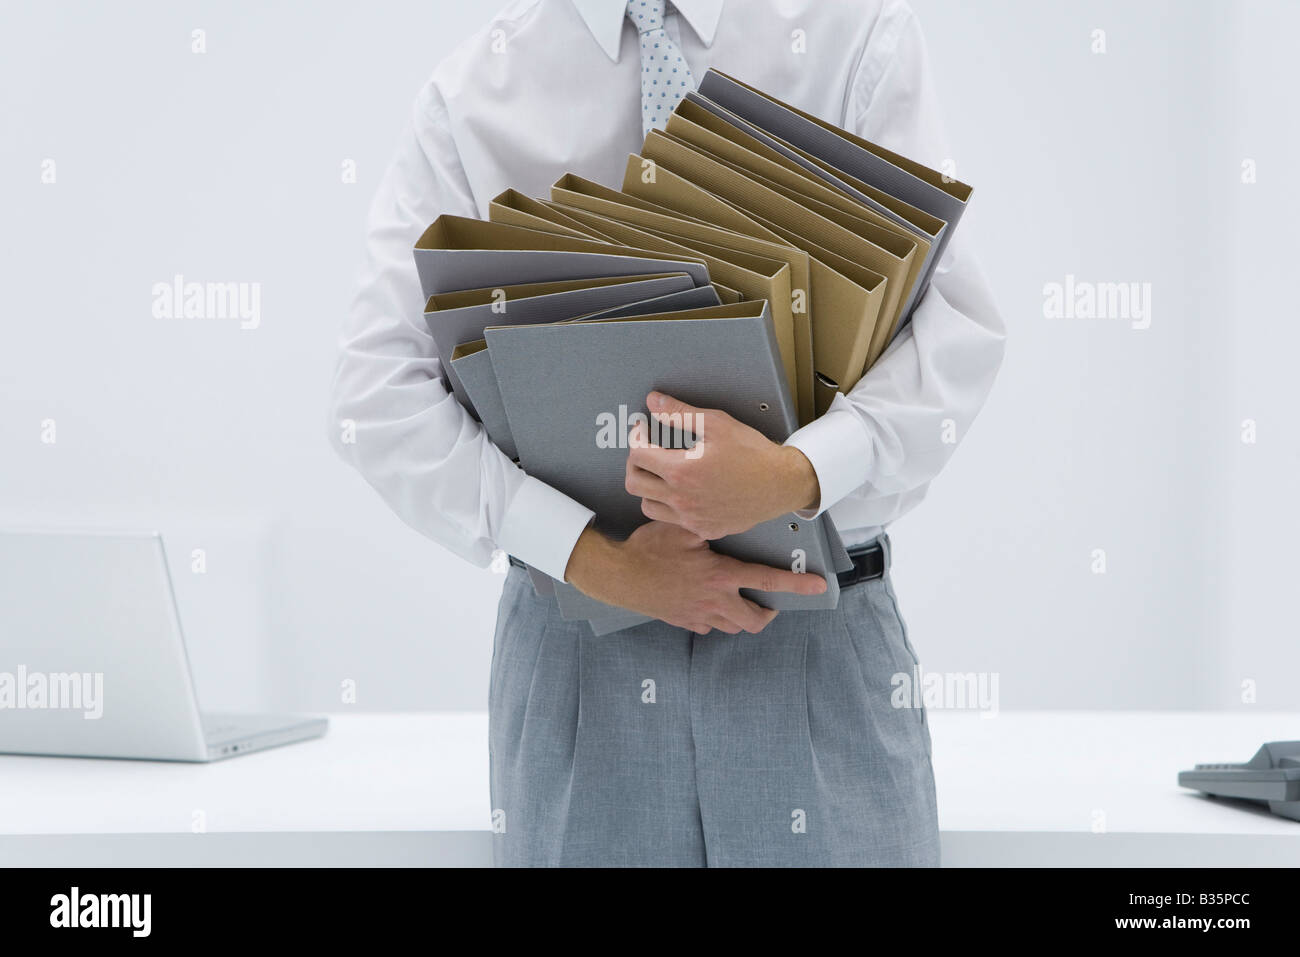 Man holding many binders, cropped view - Stock Image